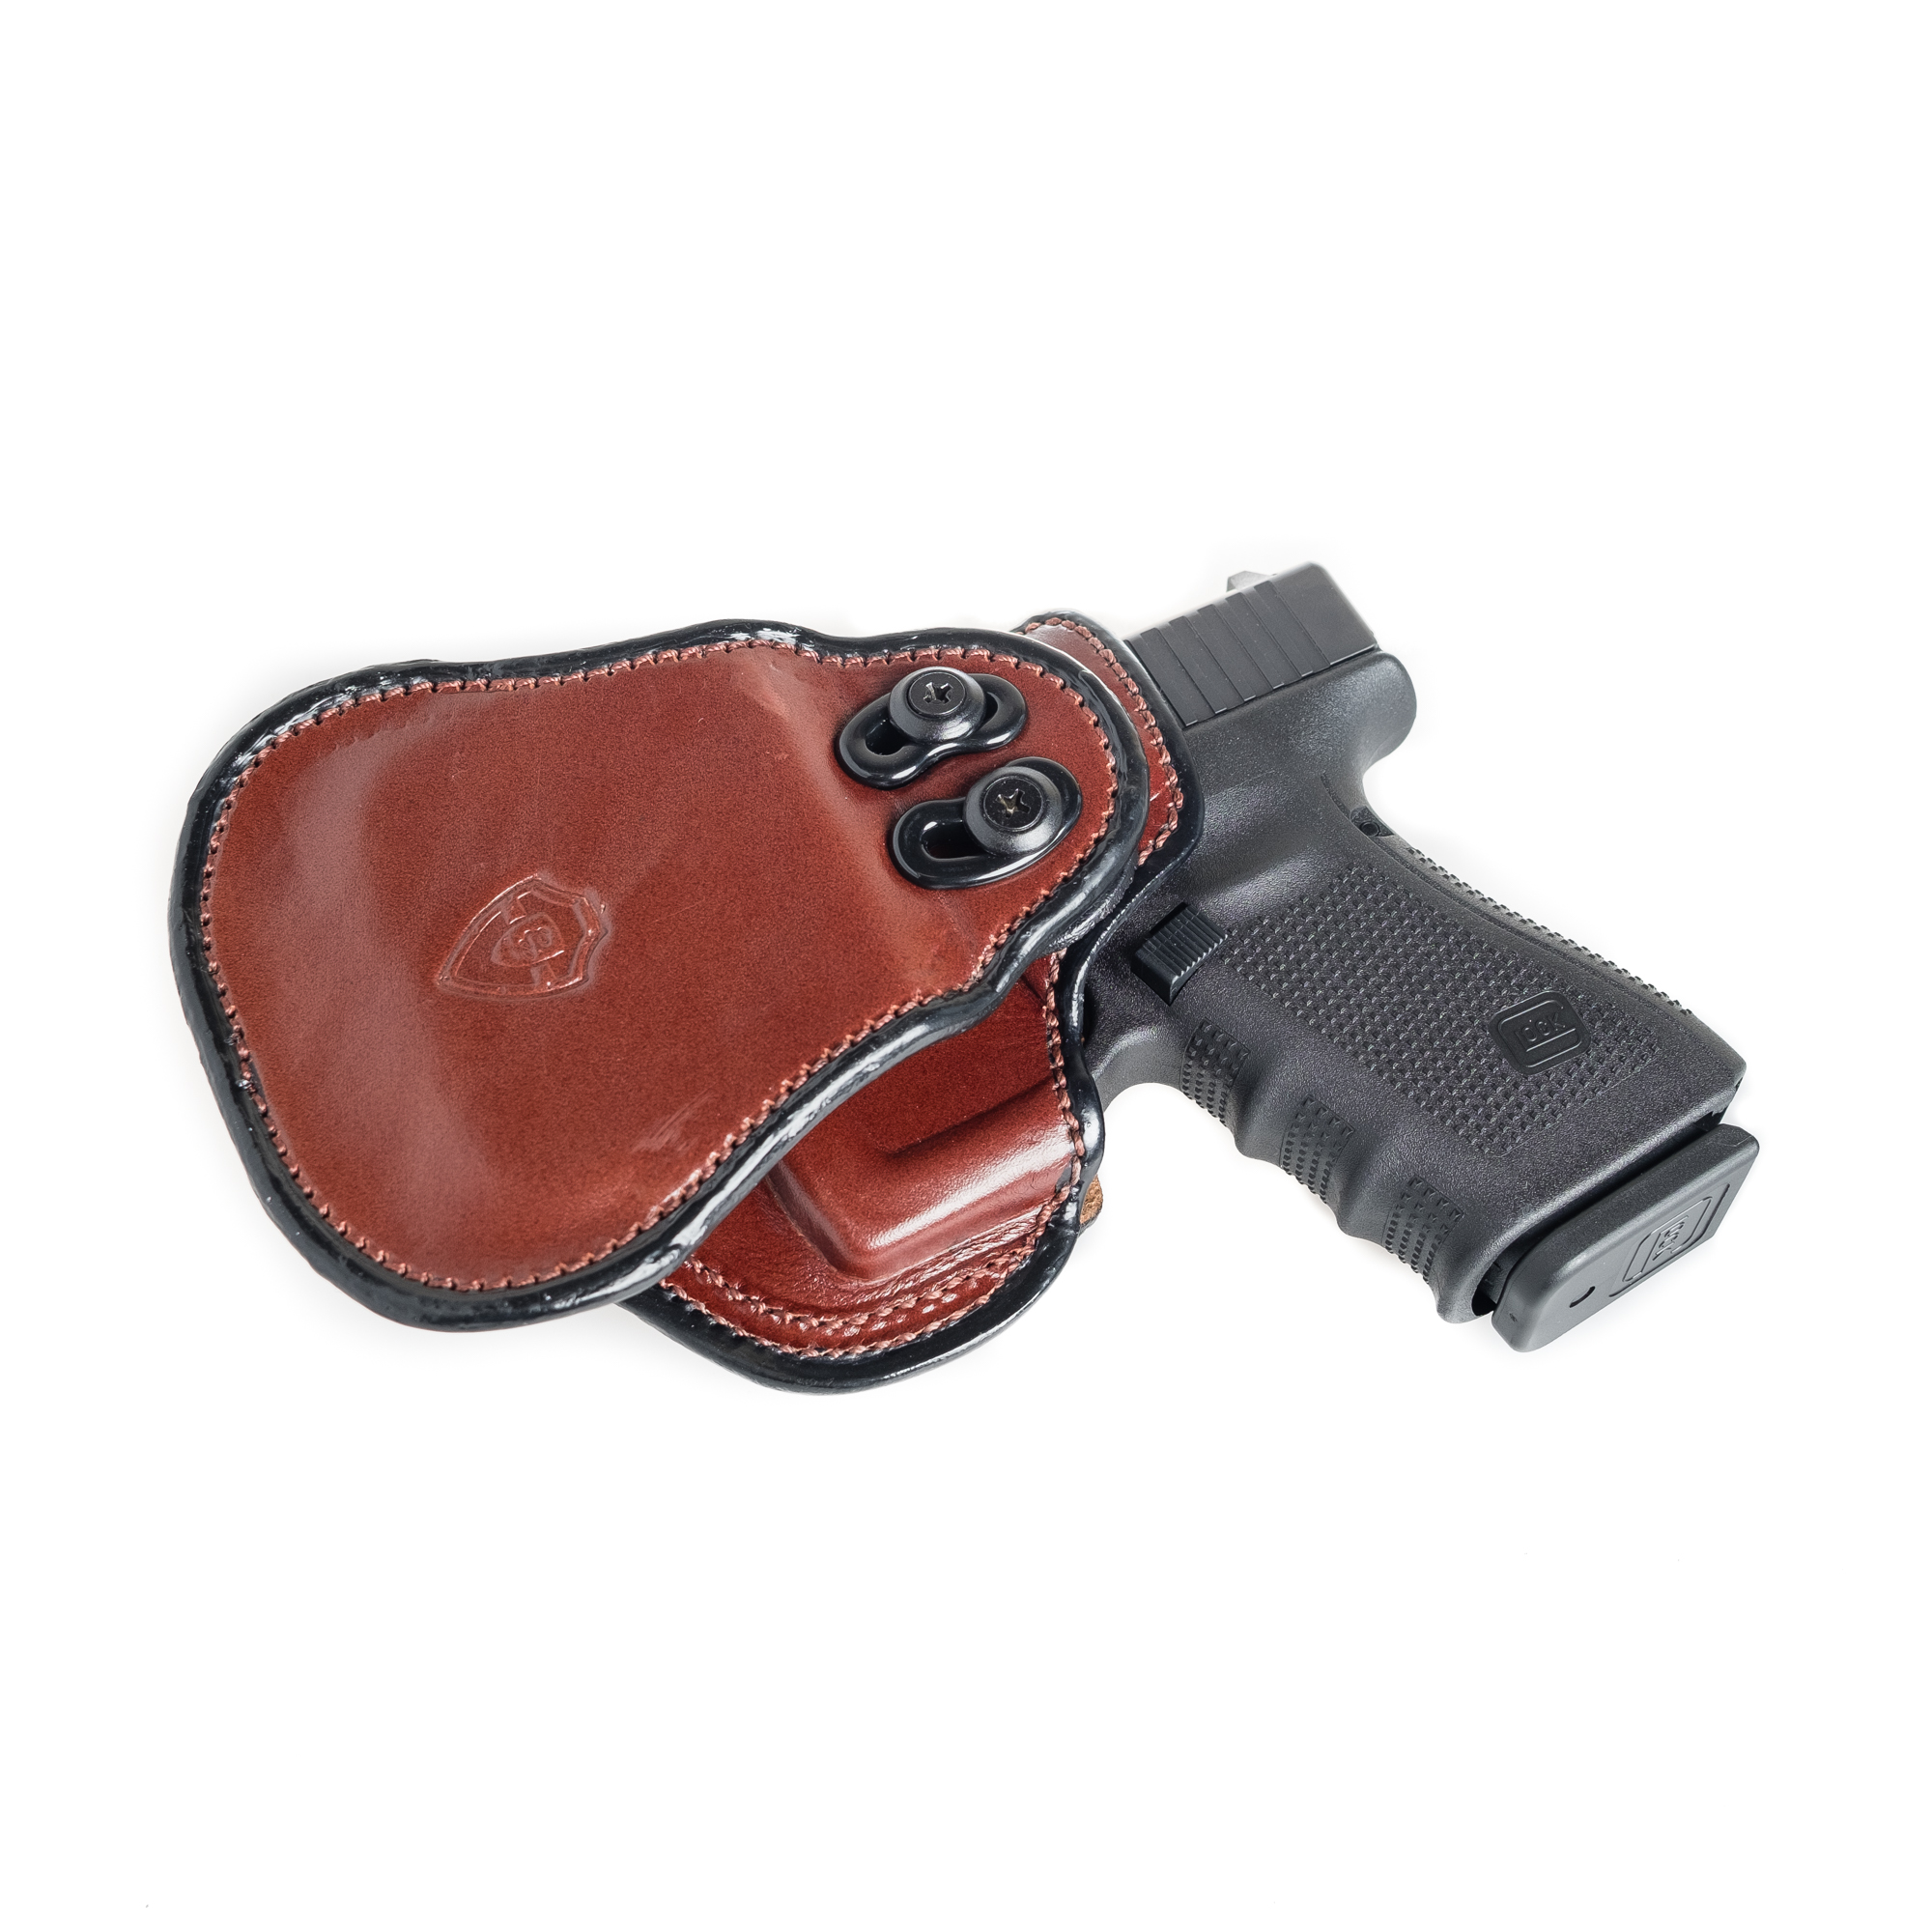 Holsters, Belts & Pouches Owb Leather Paddle With Adjustable Cant. Paddle Holster For Sig Sauer P226